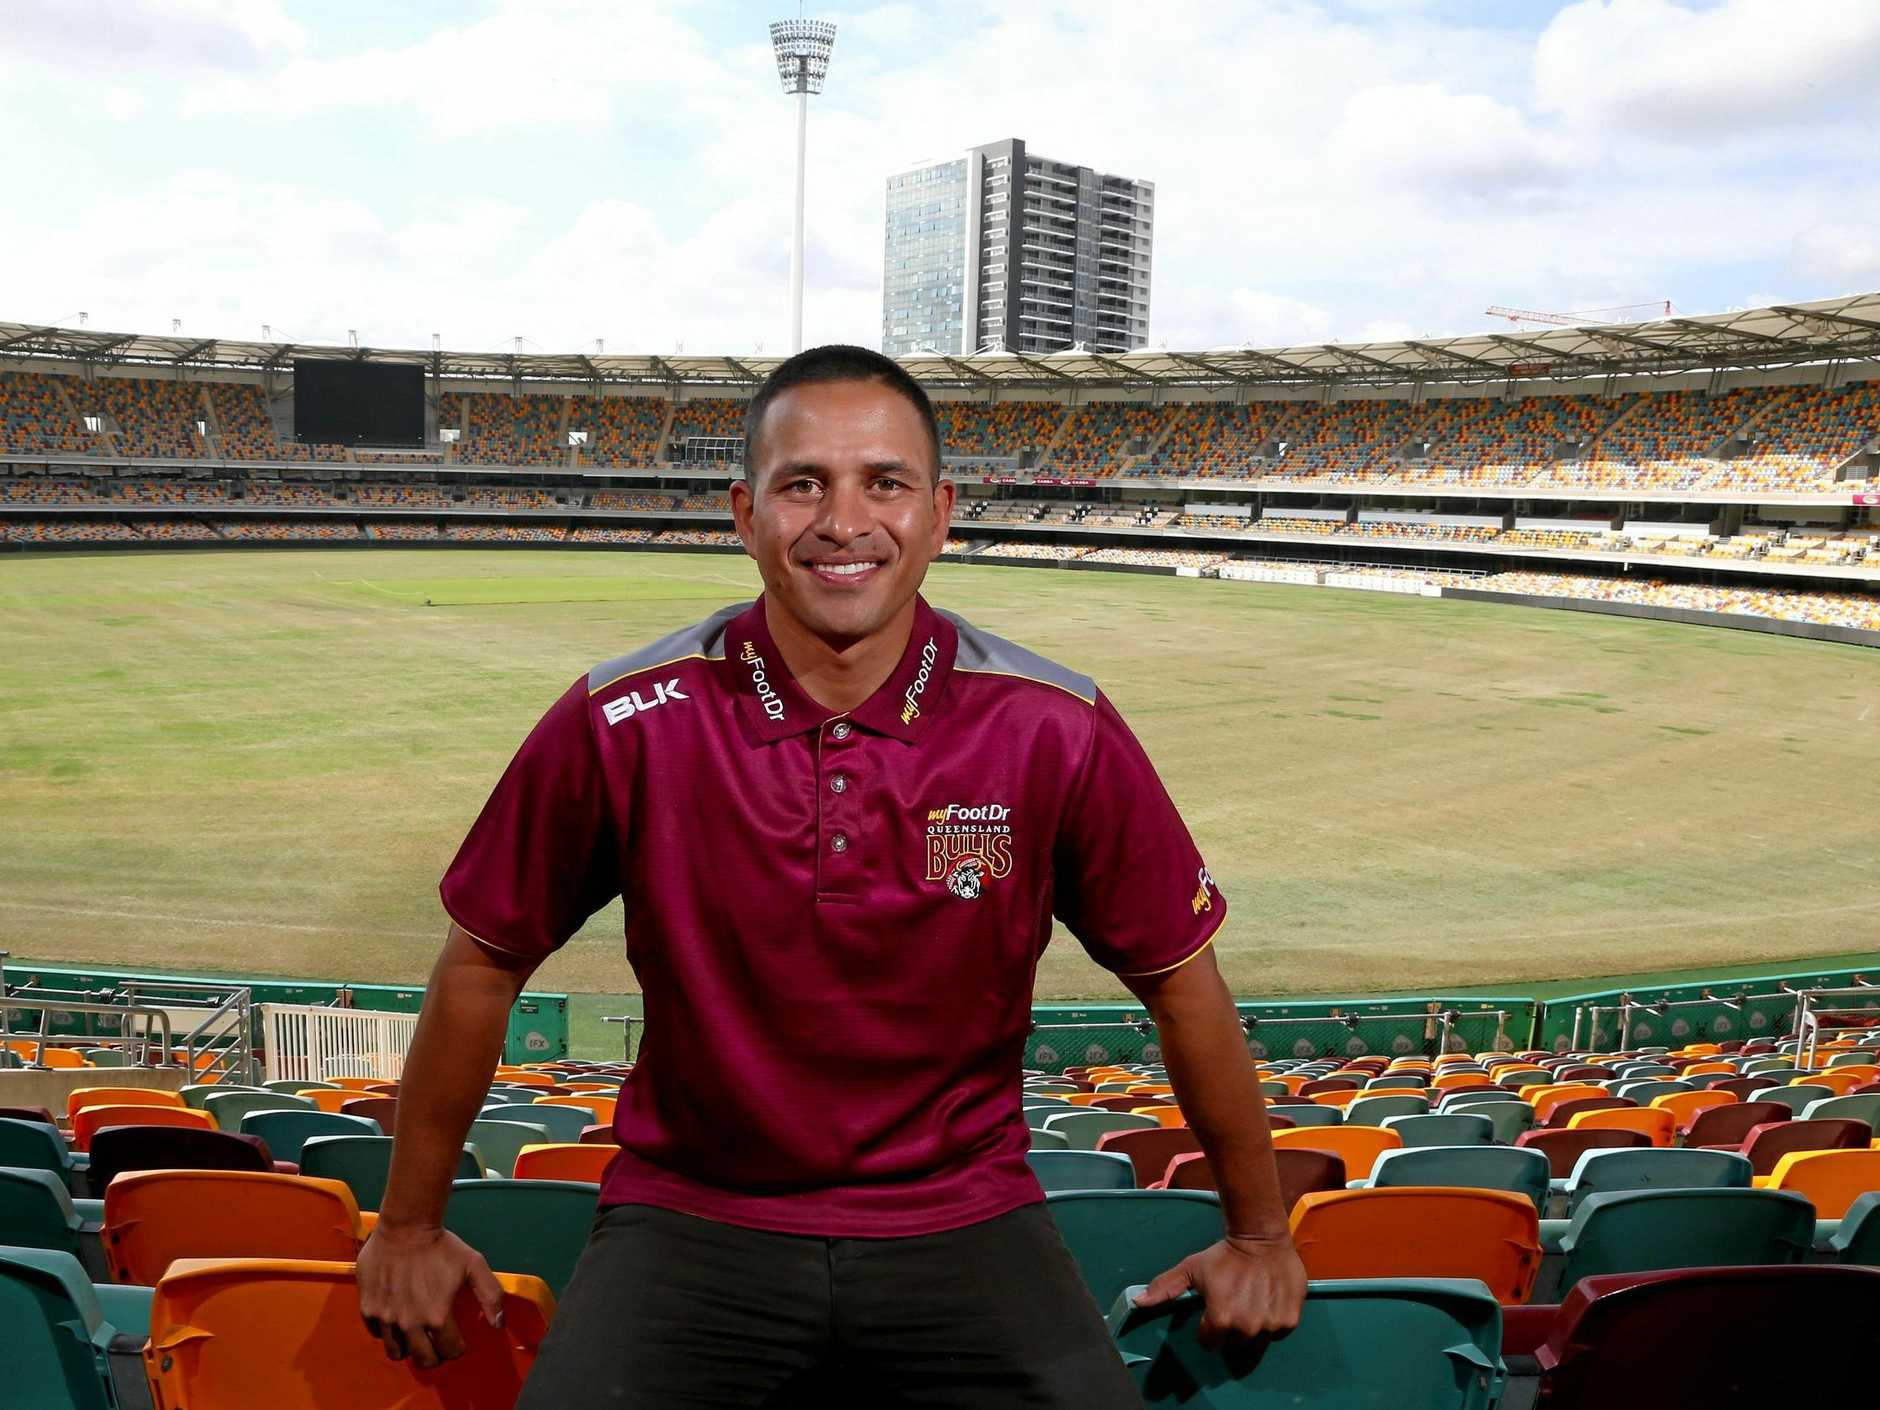 Queensland Bulls captain Usman Khawaja has his sights on winning this season's domestic one-day cup.